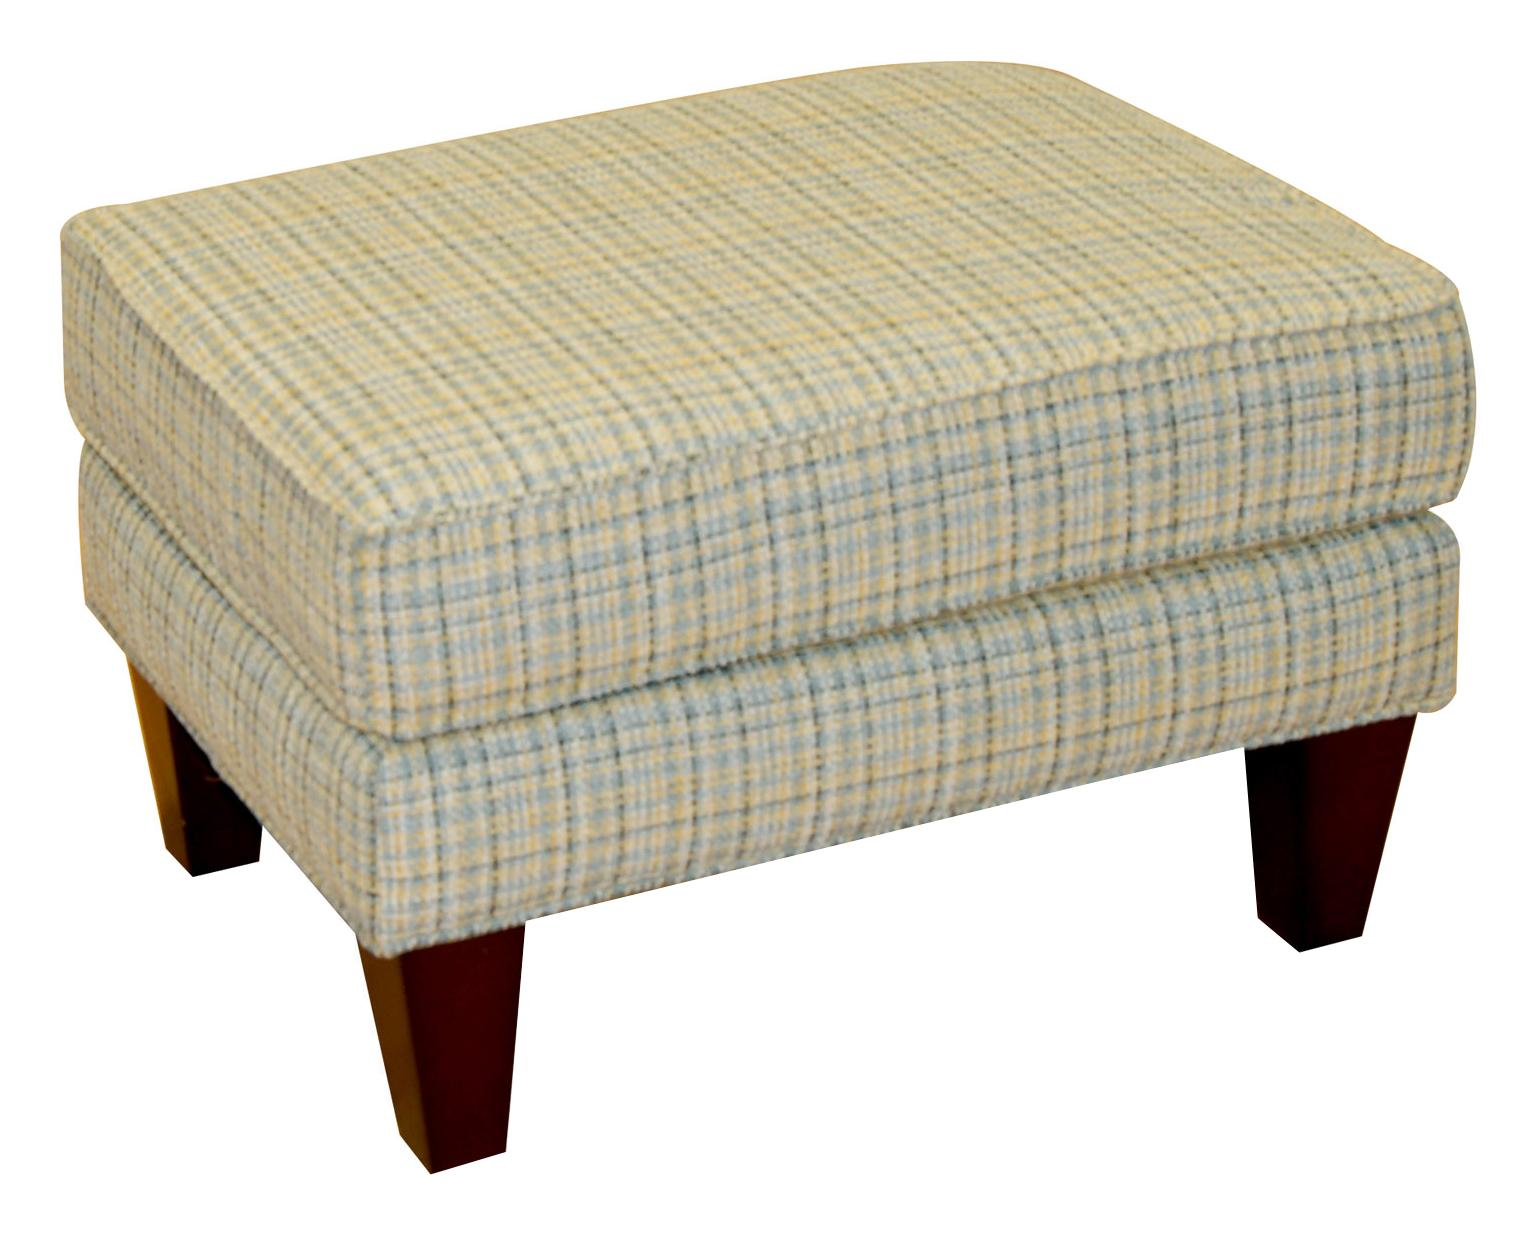 England Nash Ottoman - Item Number: 4437-Wintour_Lemoncello